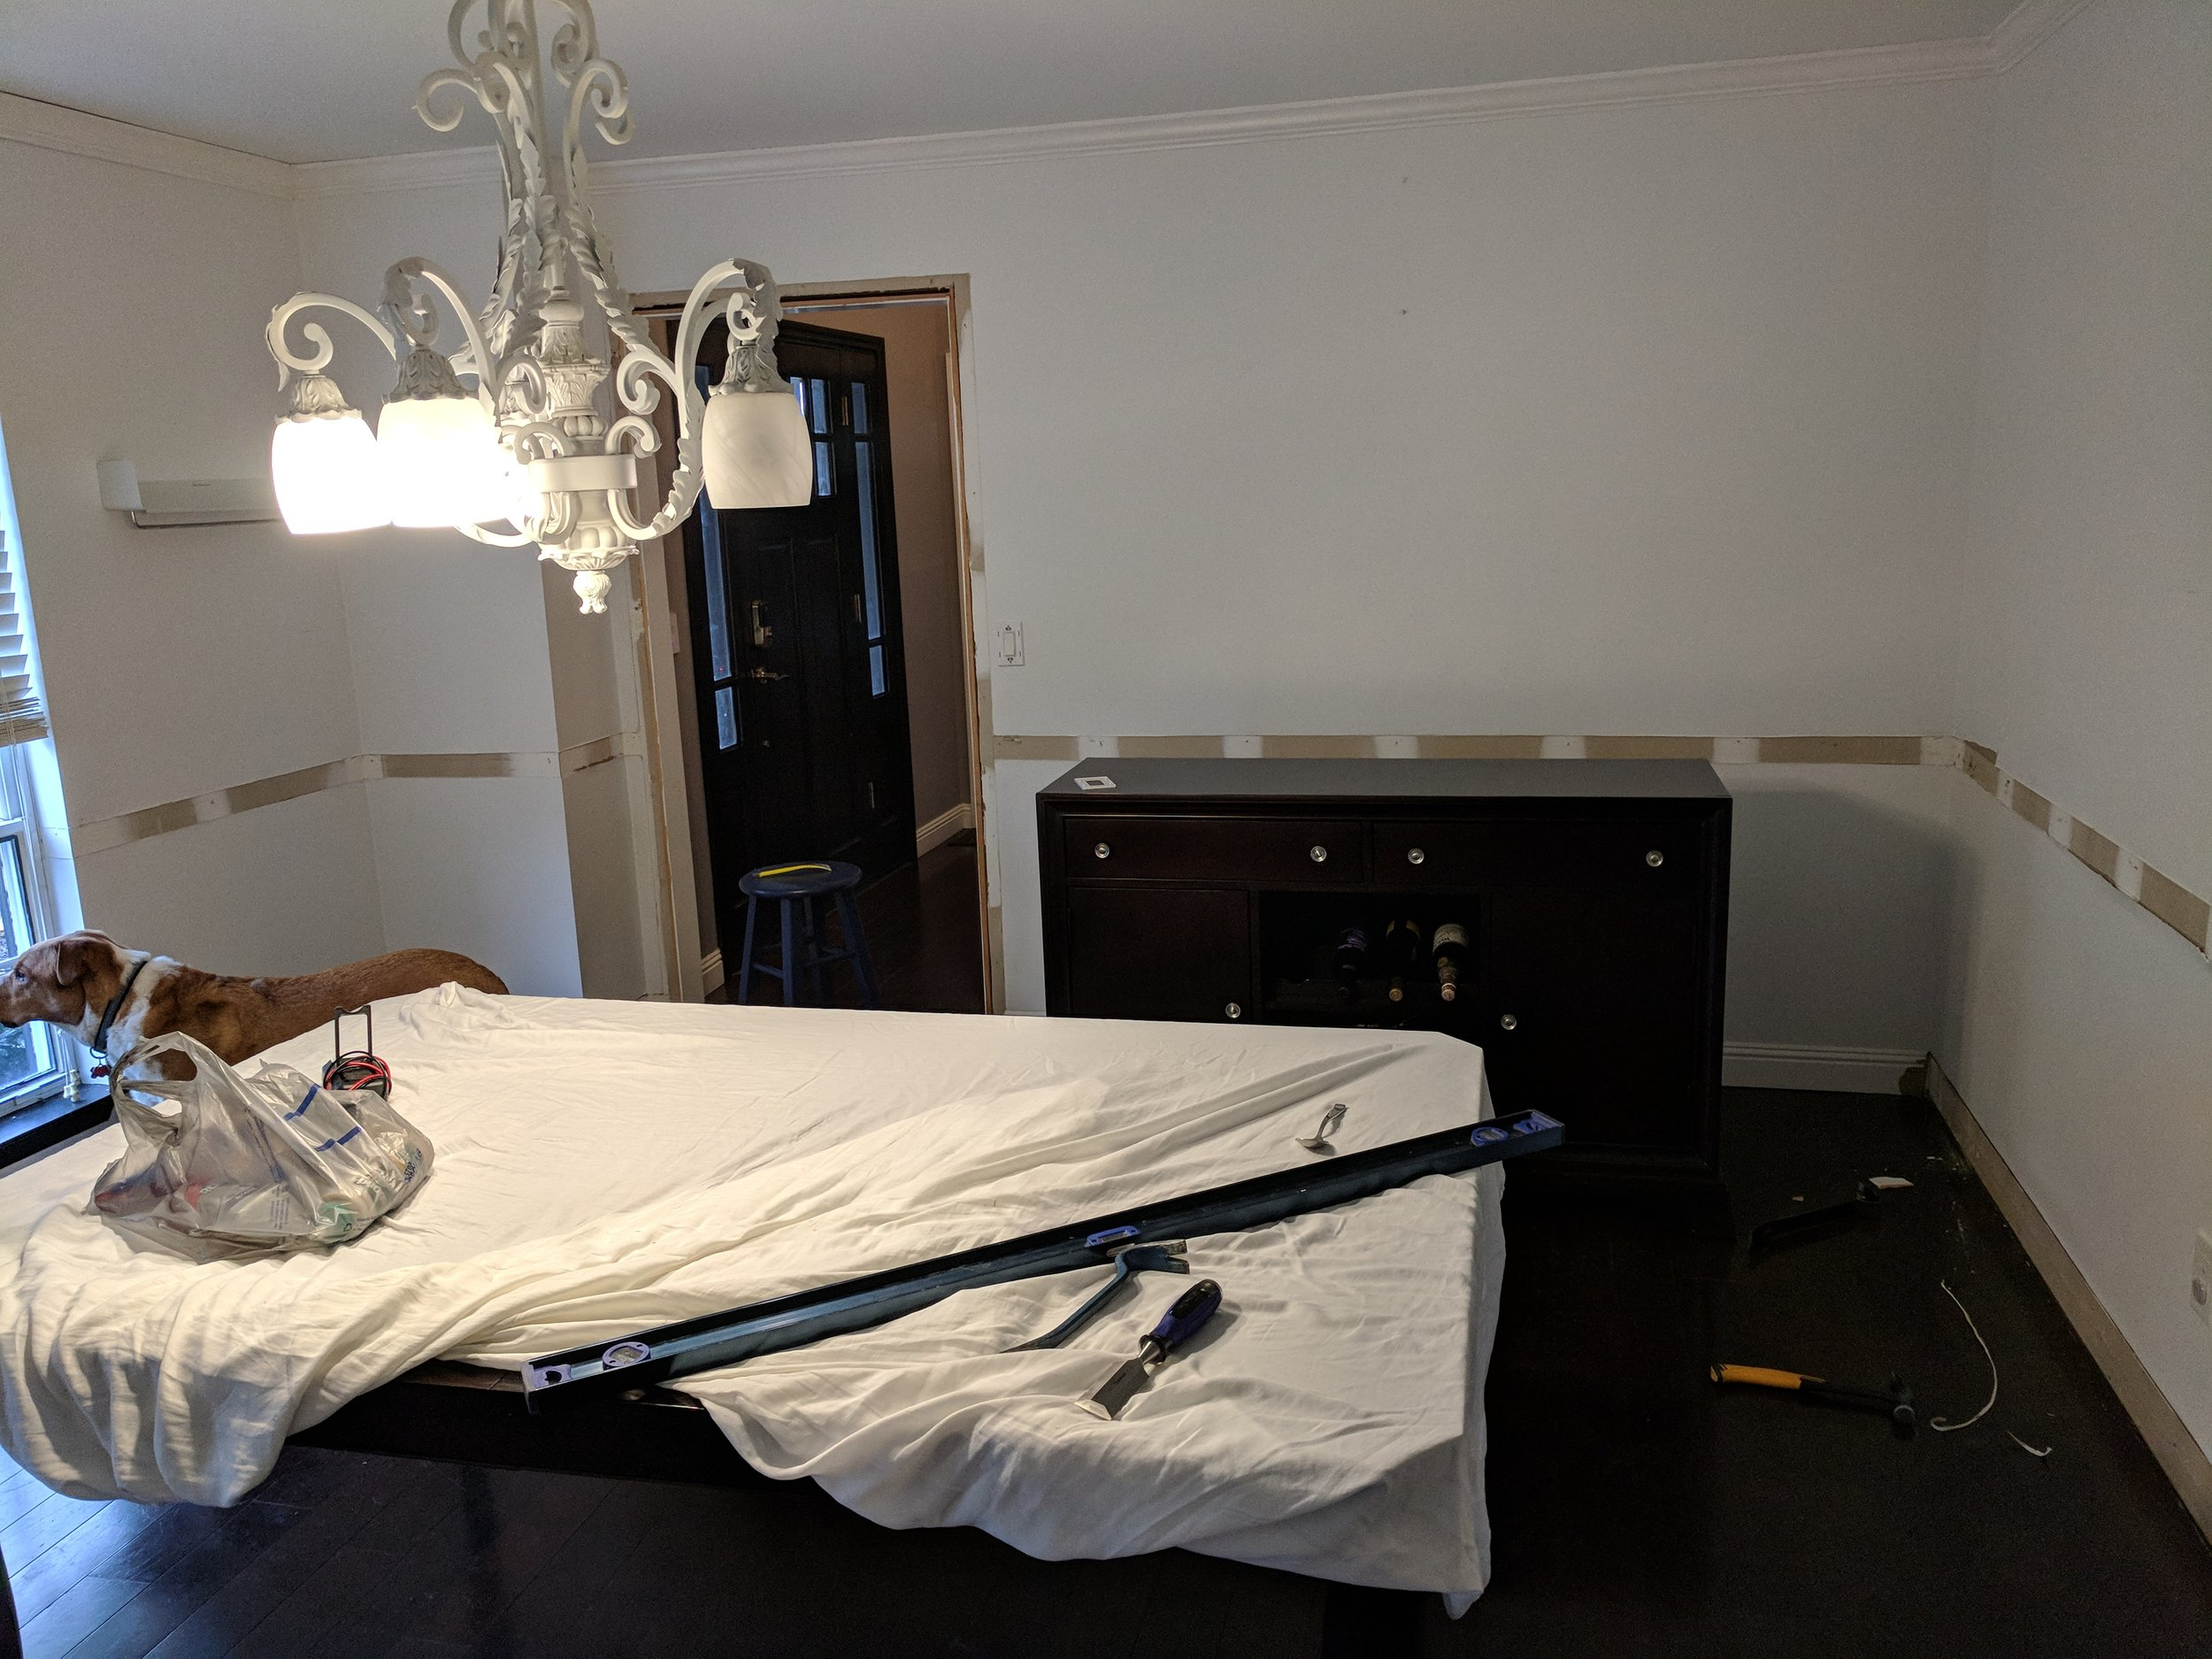 Here it is in all it's glory - this is week 1 of our dining room renovation.